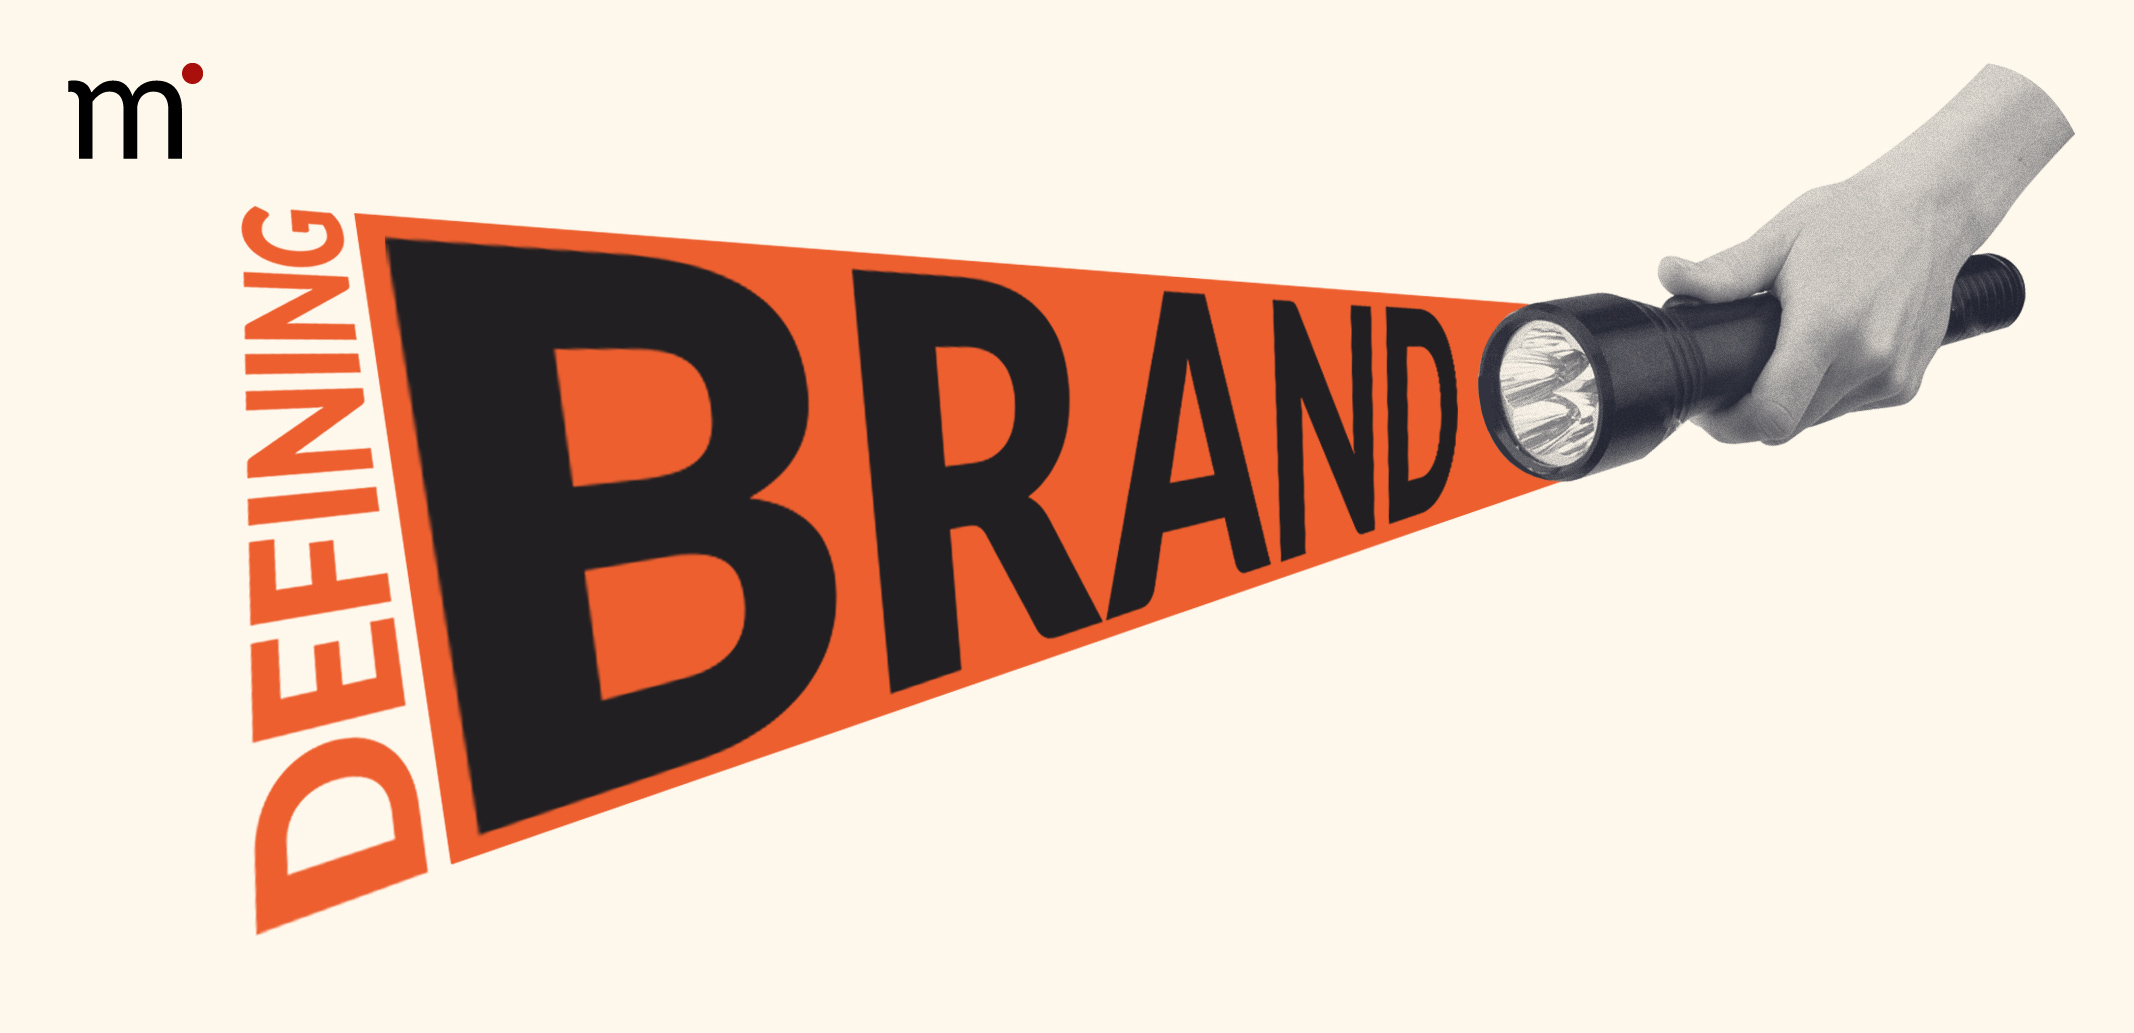 Defining What a Brand is